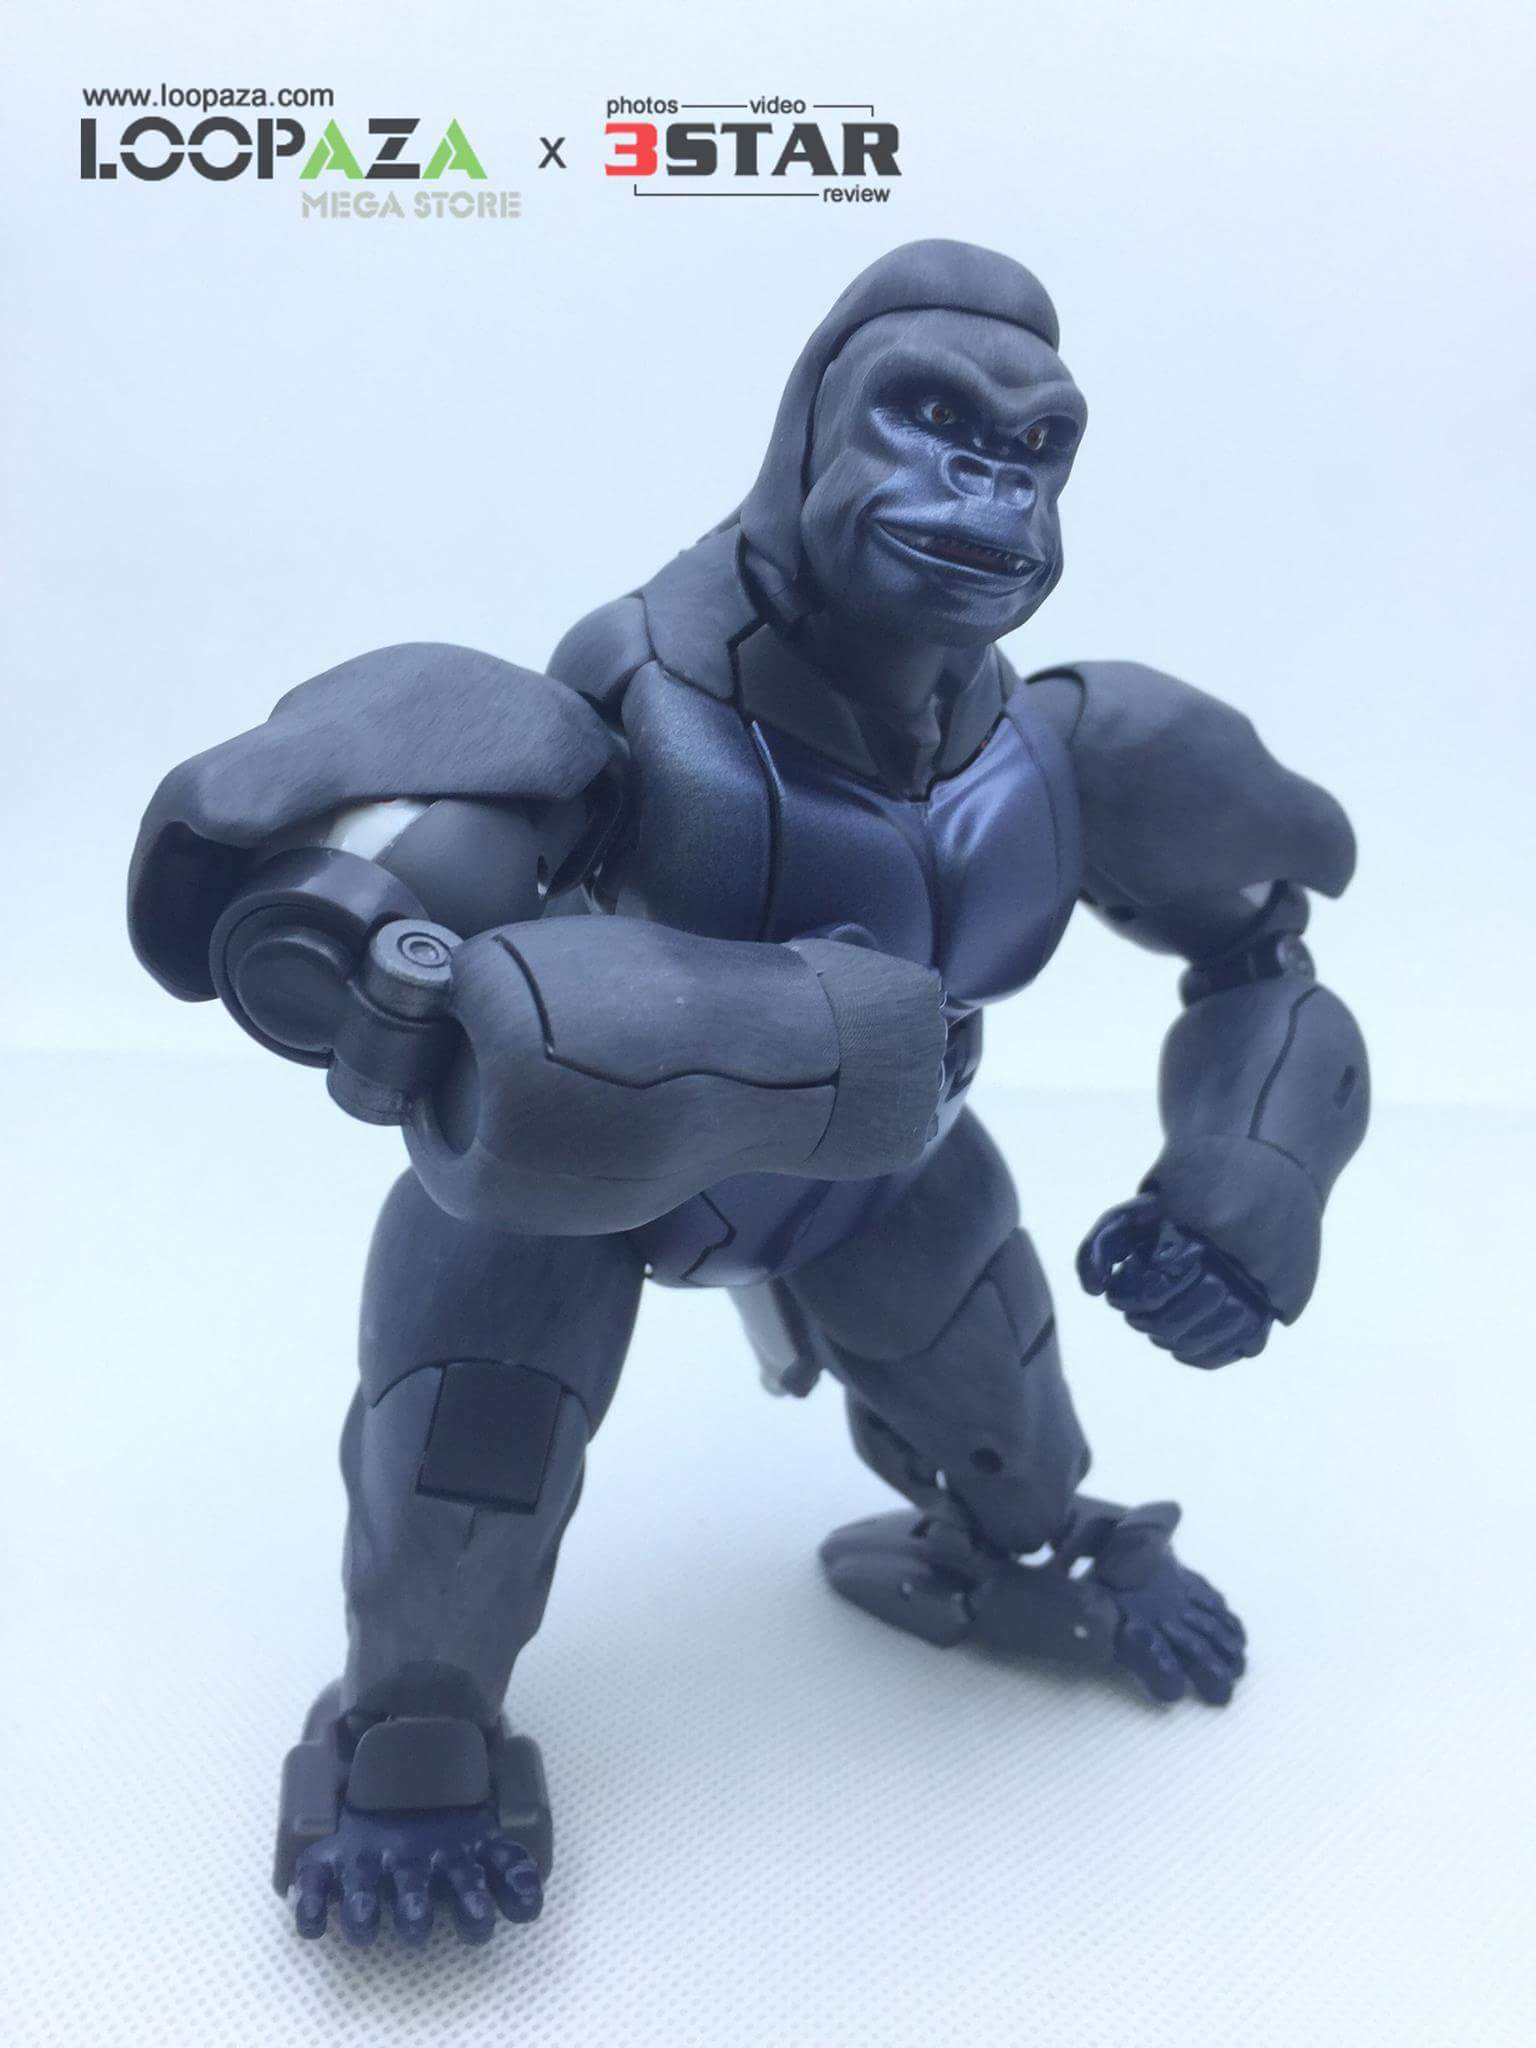 [Masterpiece] MP-32, MP-38 Optimus Primal et MP-38+ Burning Convoy (Beast Wars) - Page 3 7rc6LlNL